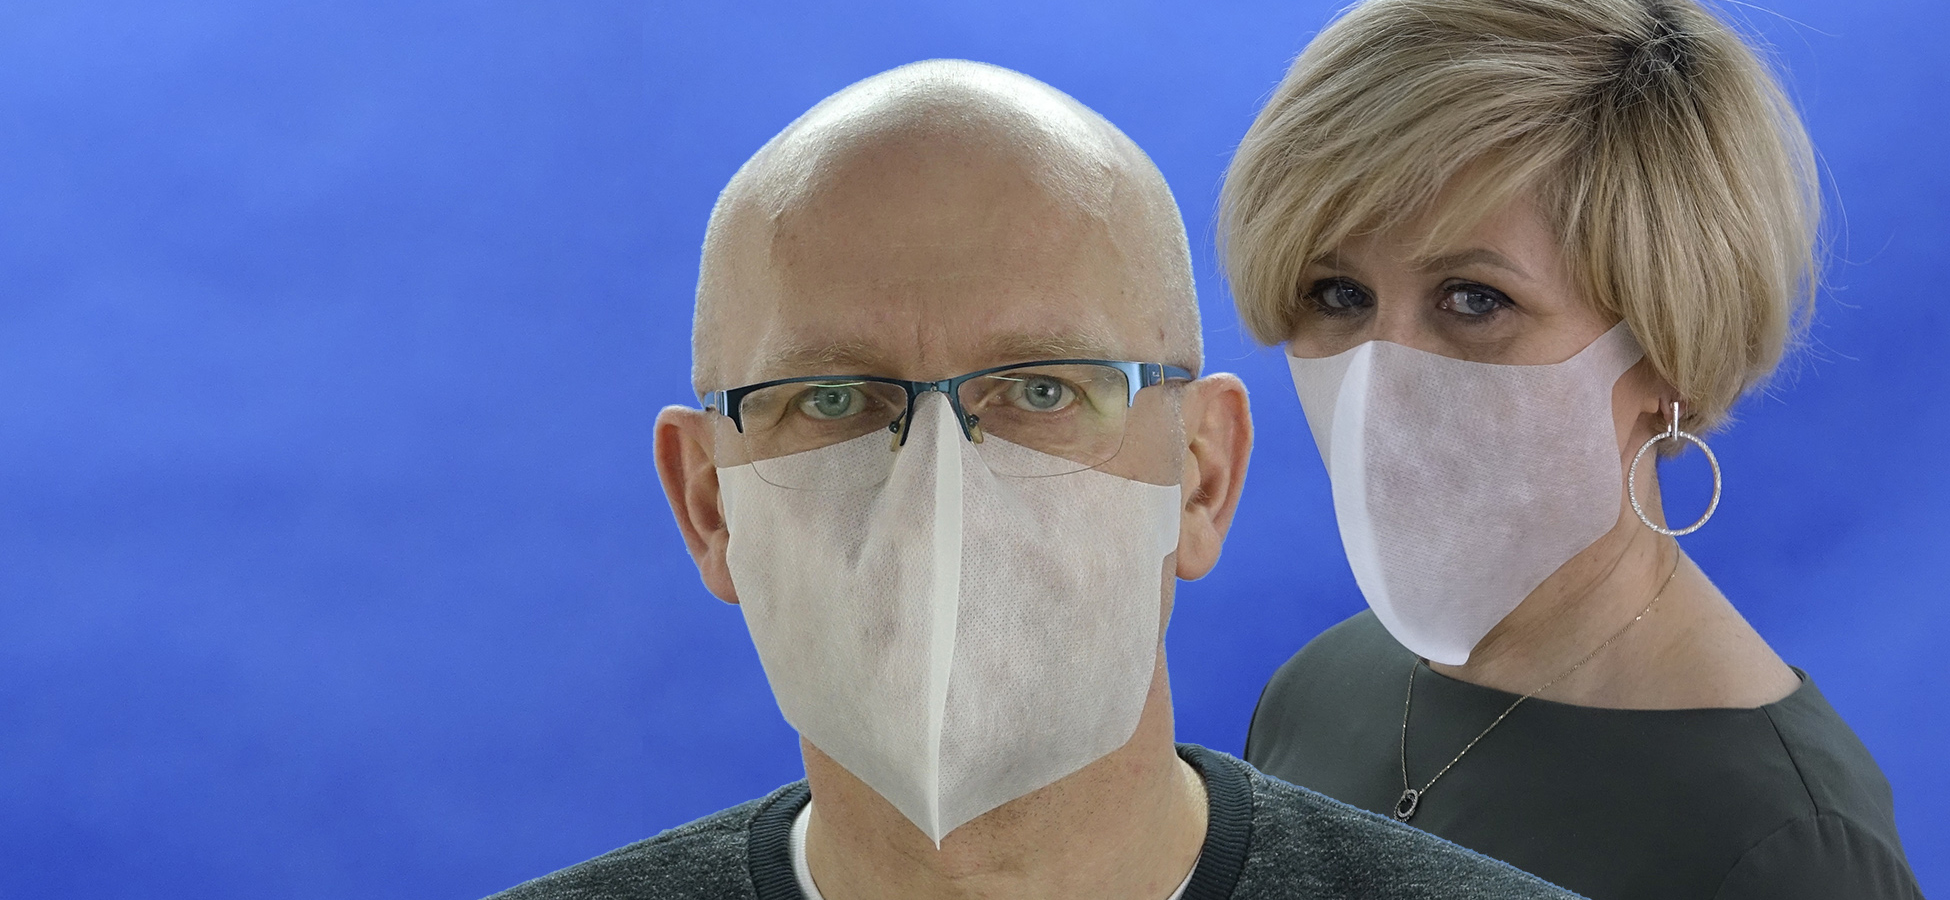 Protective mask – prevention not only during pandemic